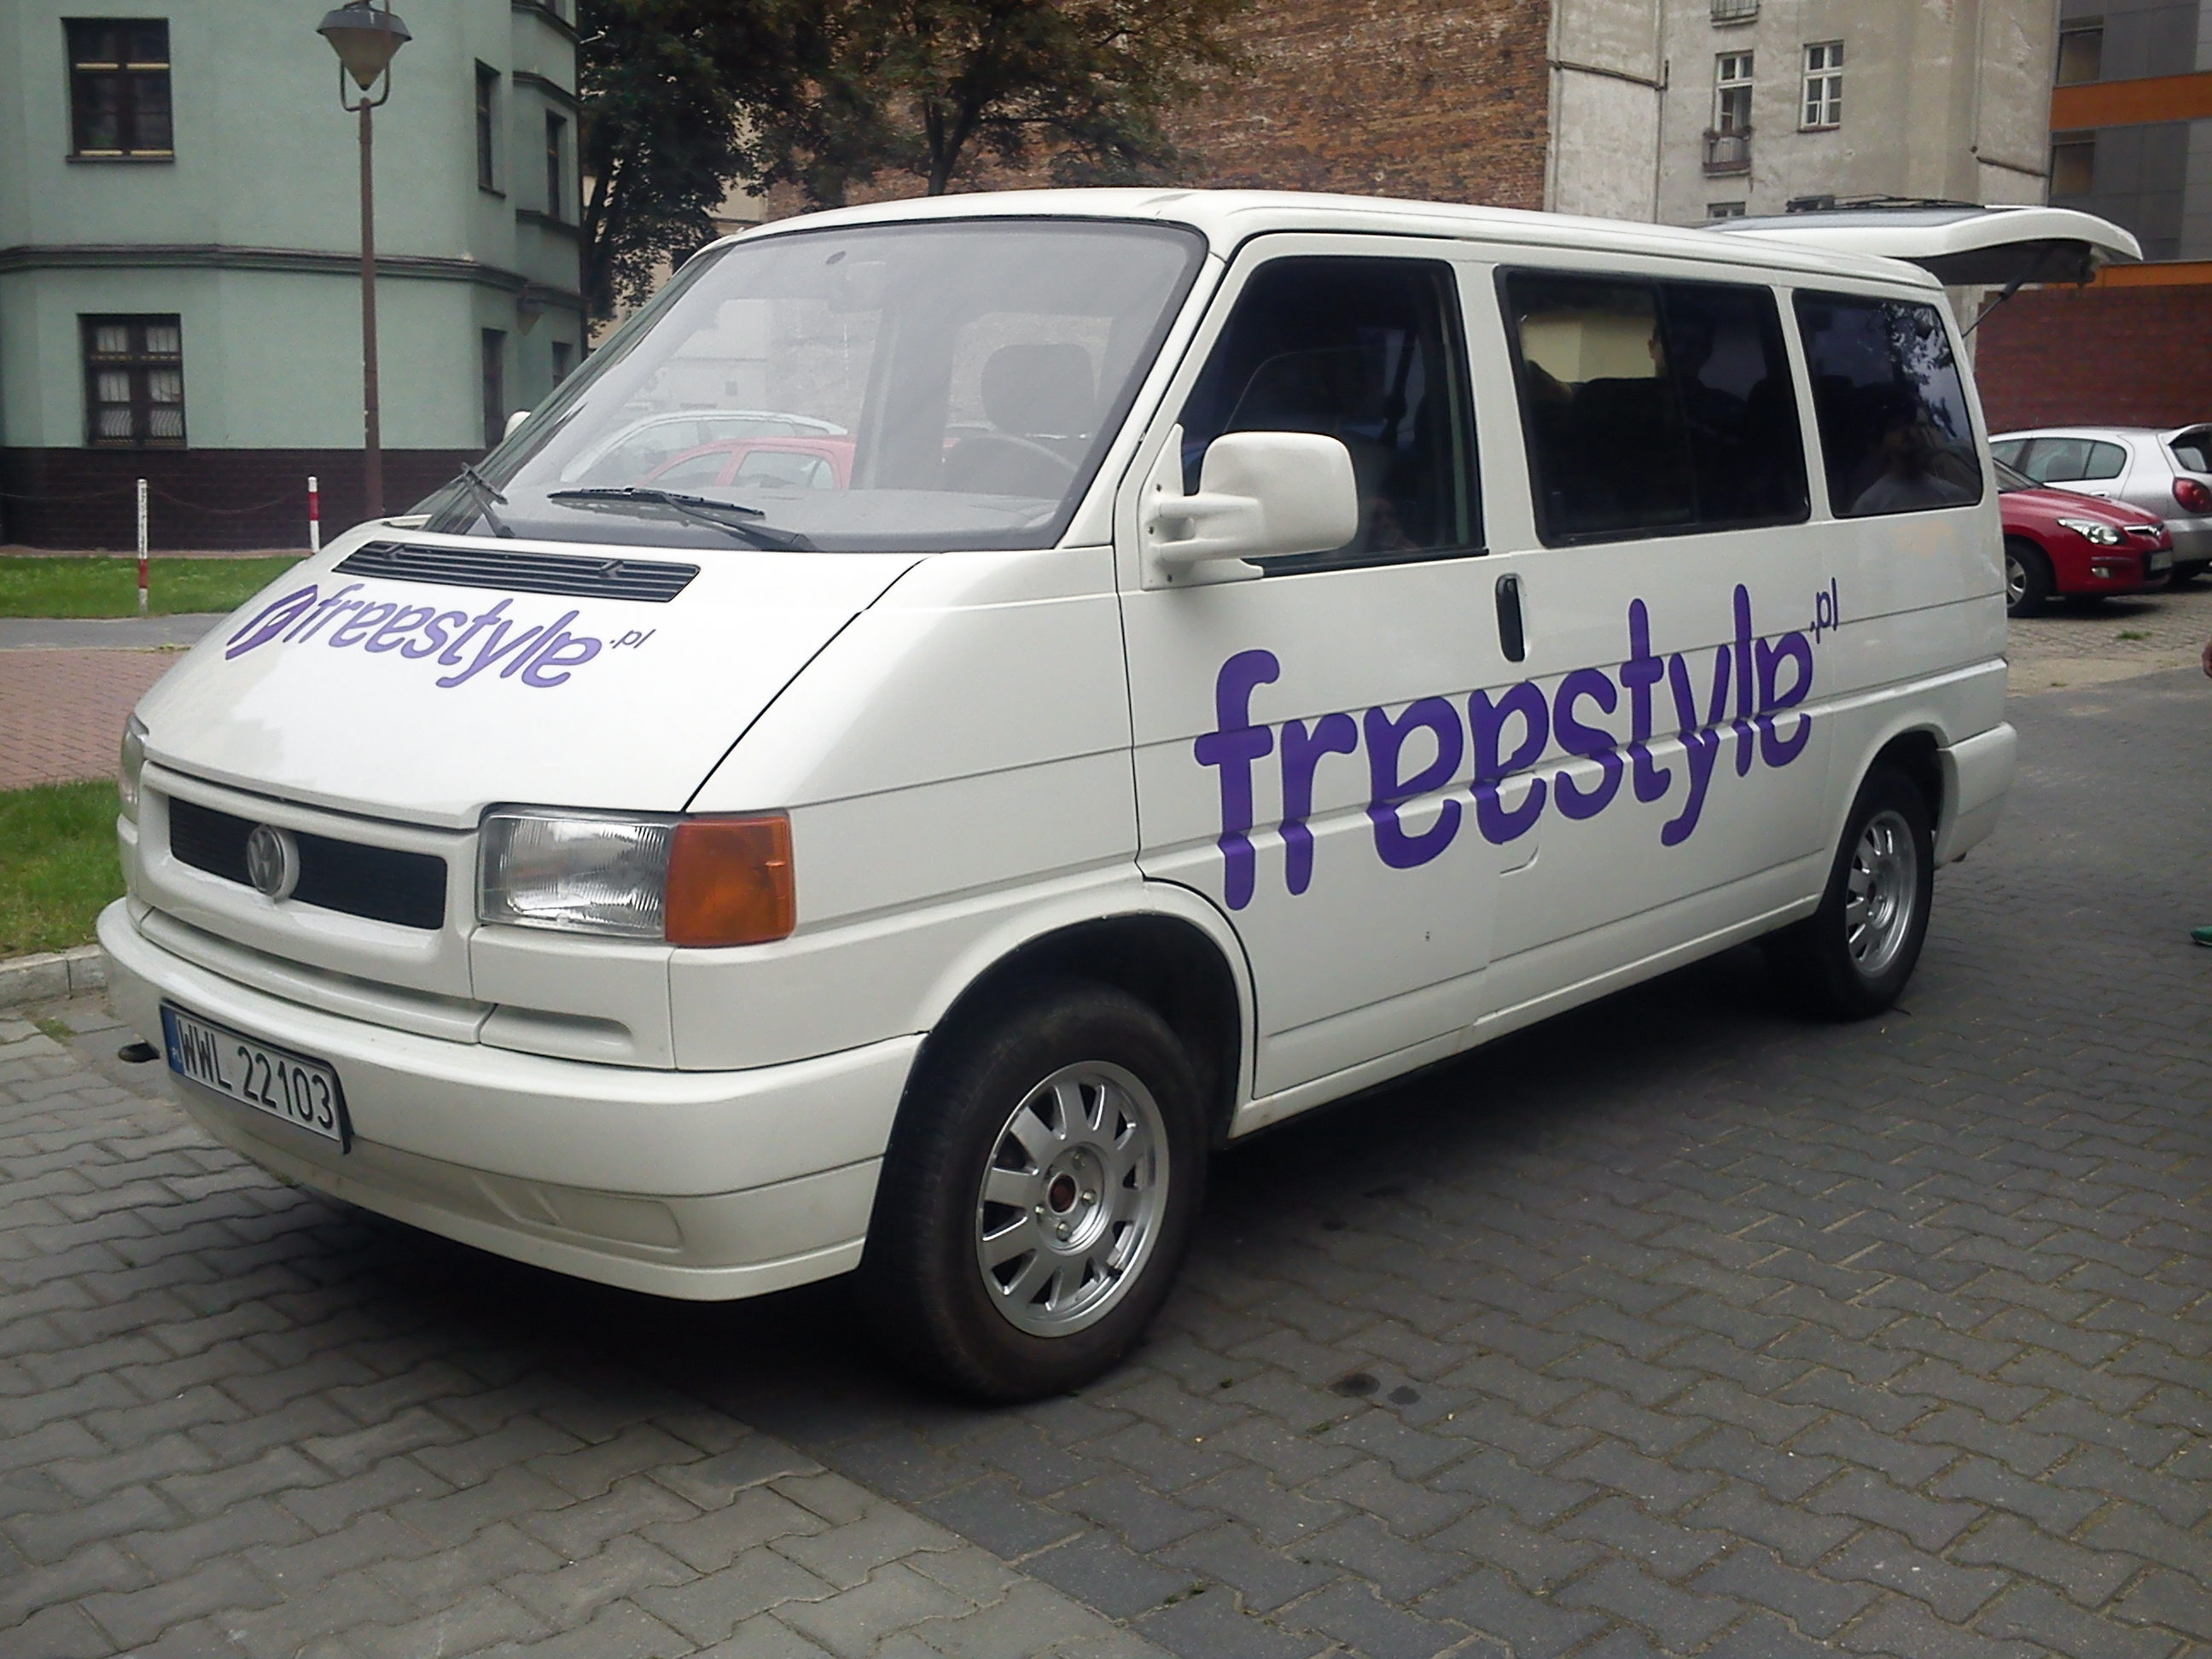 Freestyle BUS